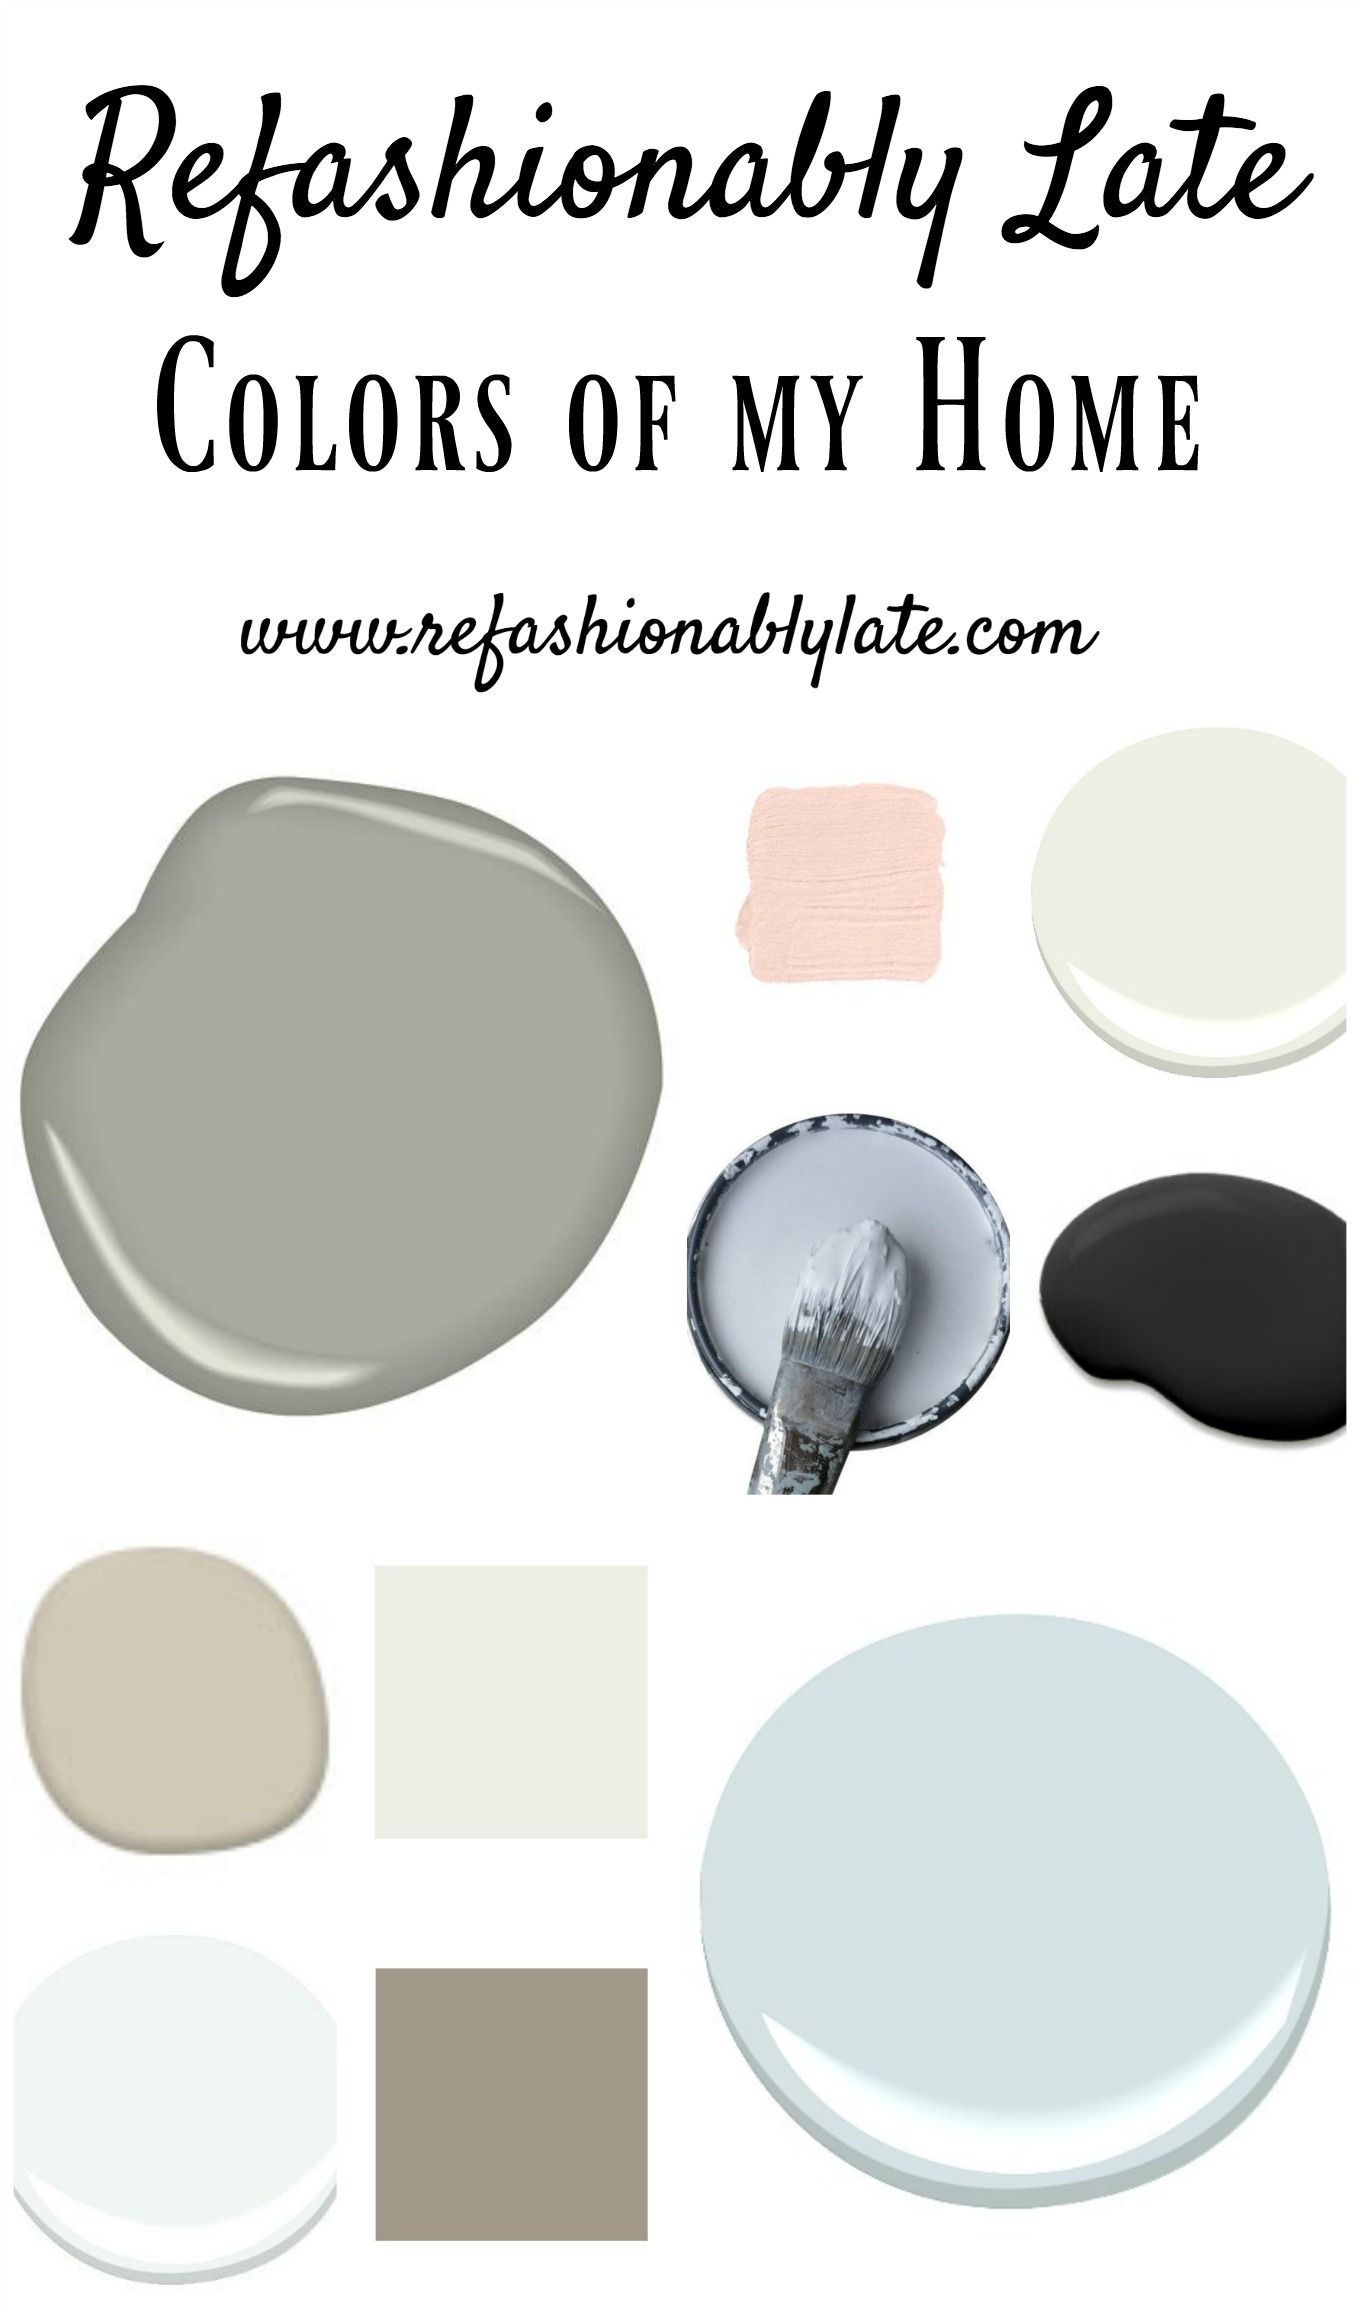 Colors of My Home: My Favorite Paint Colors www.refashionablylate.com